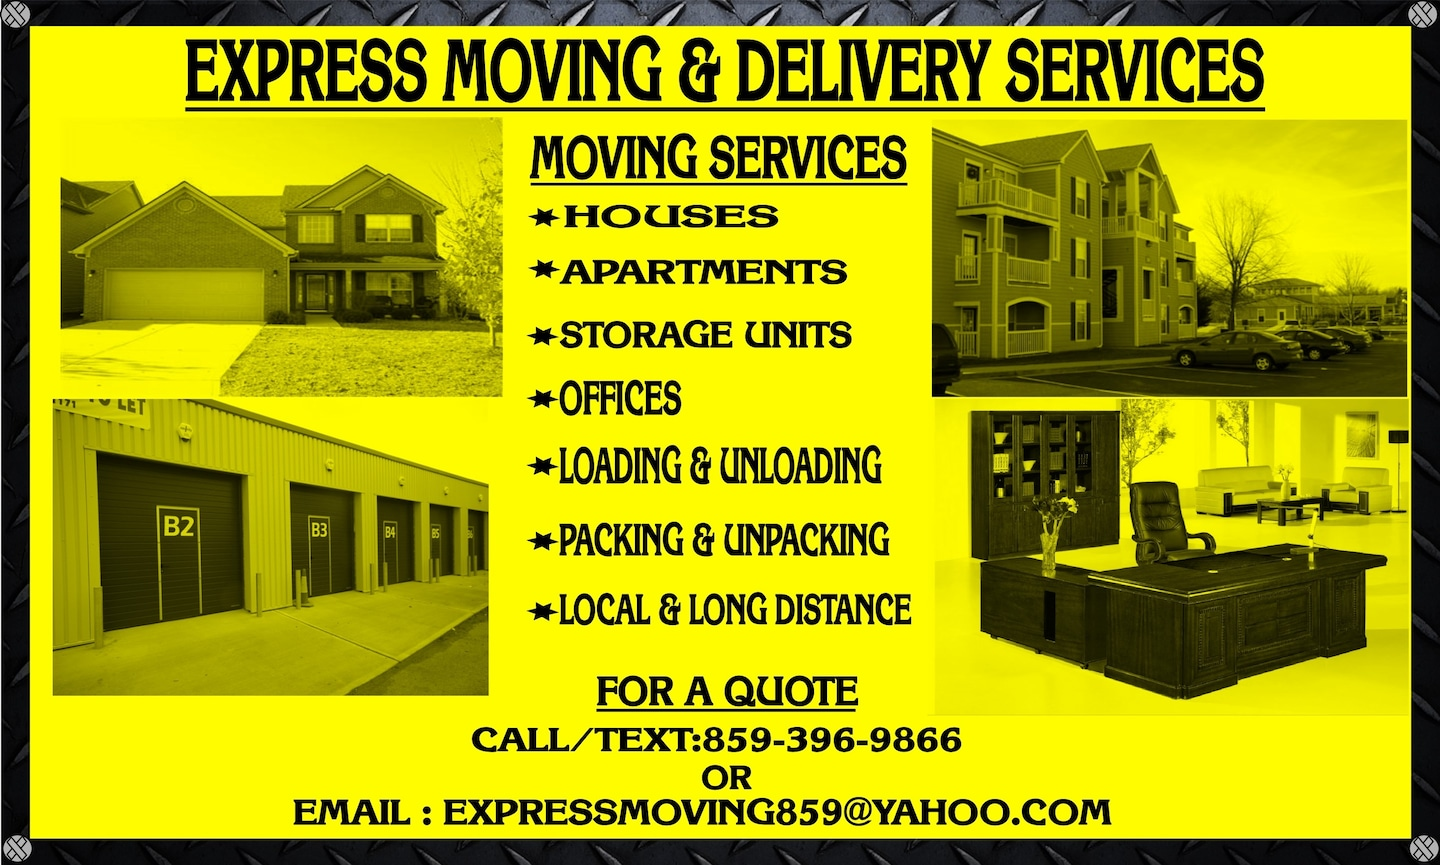 Xpress Moving and Delivery Services